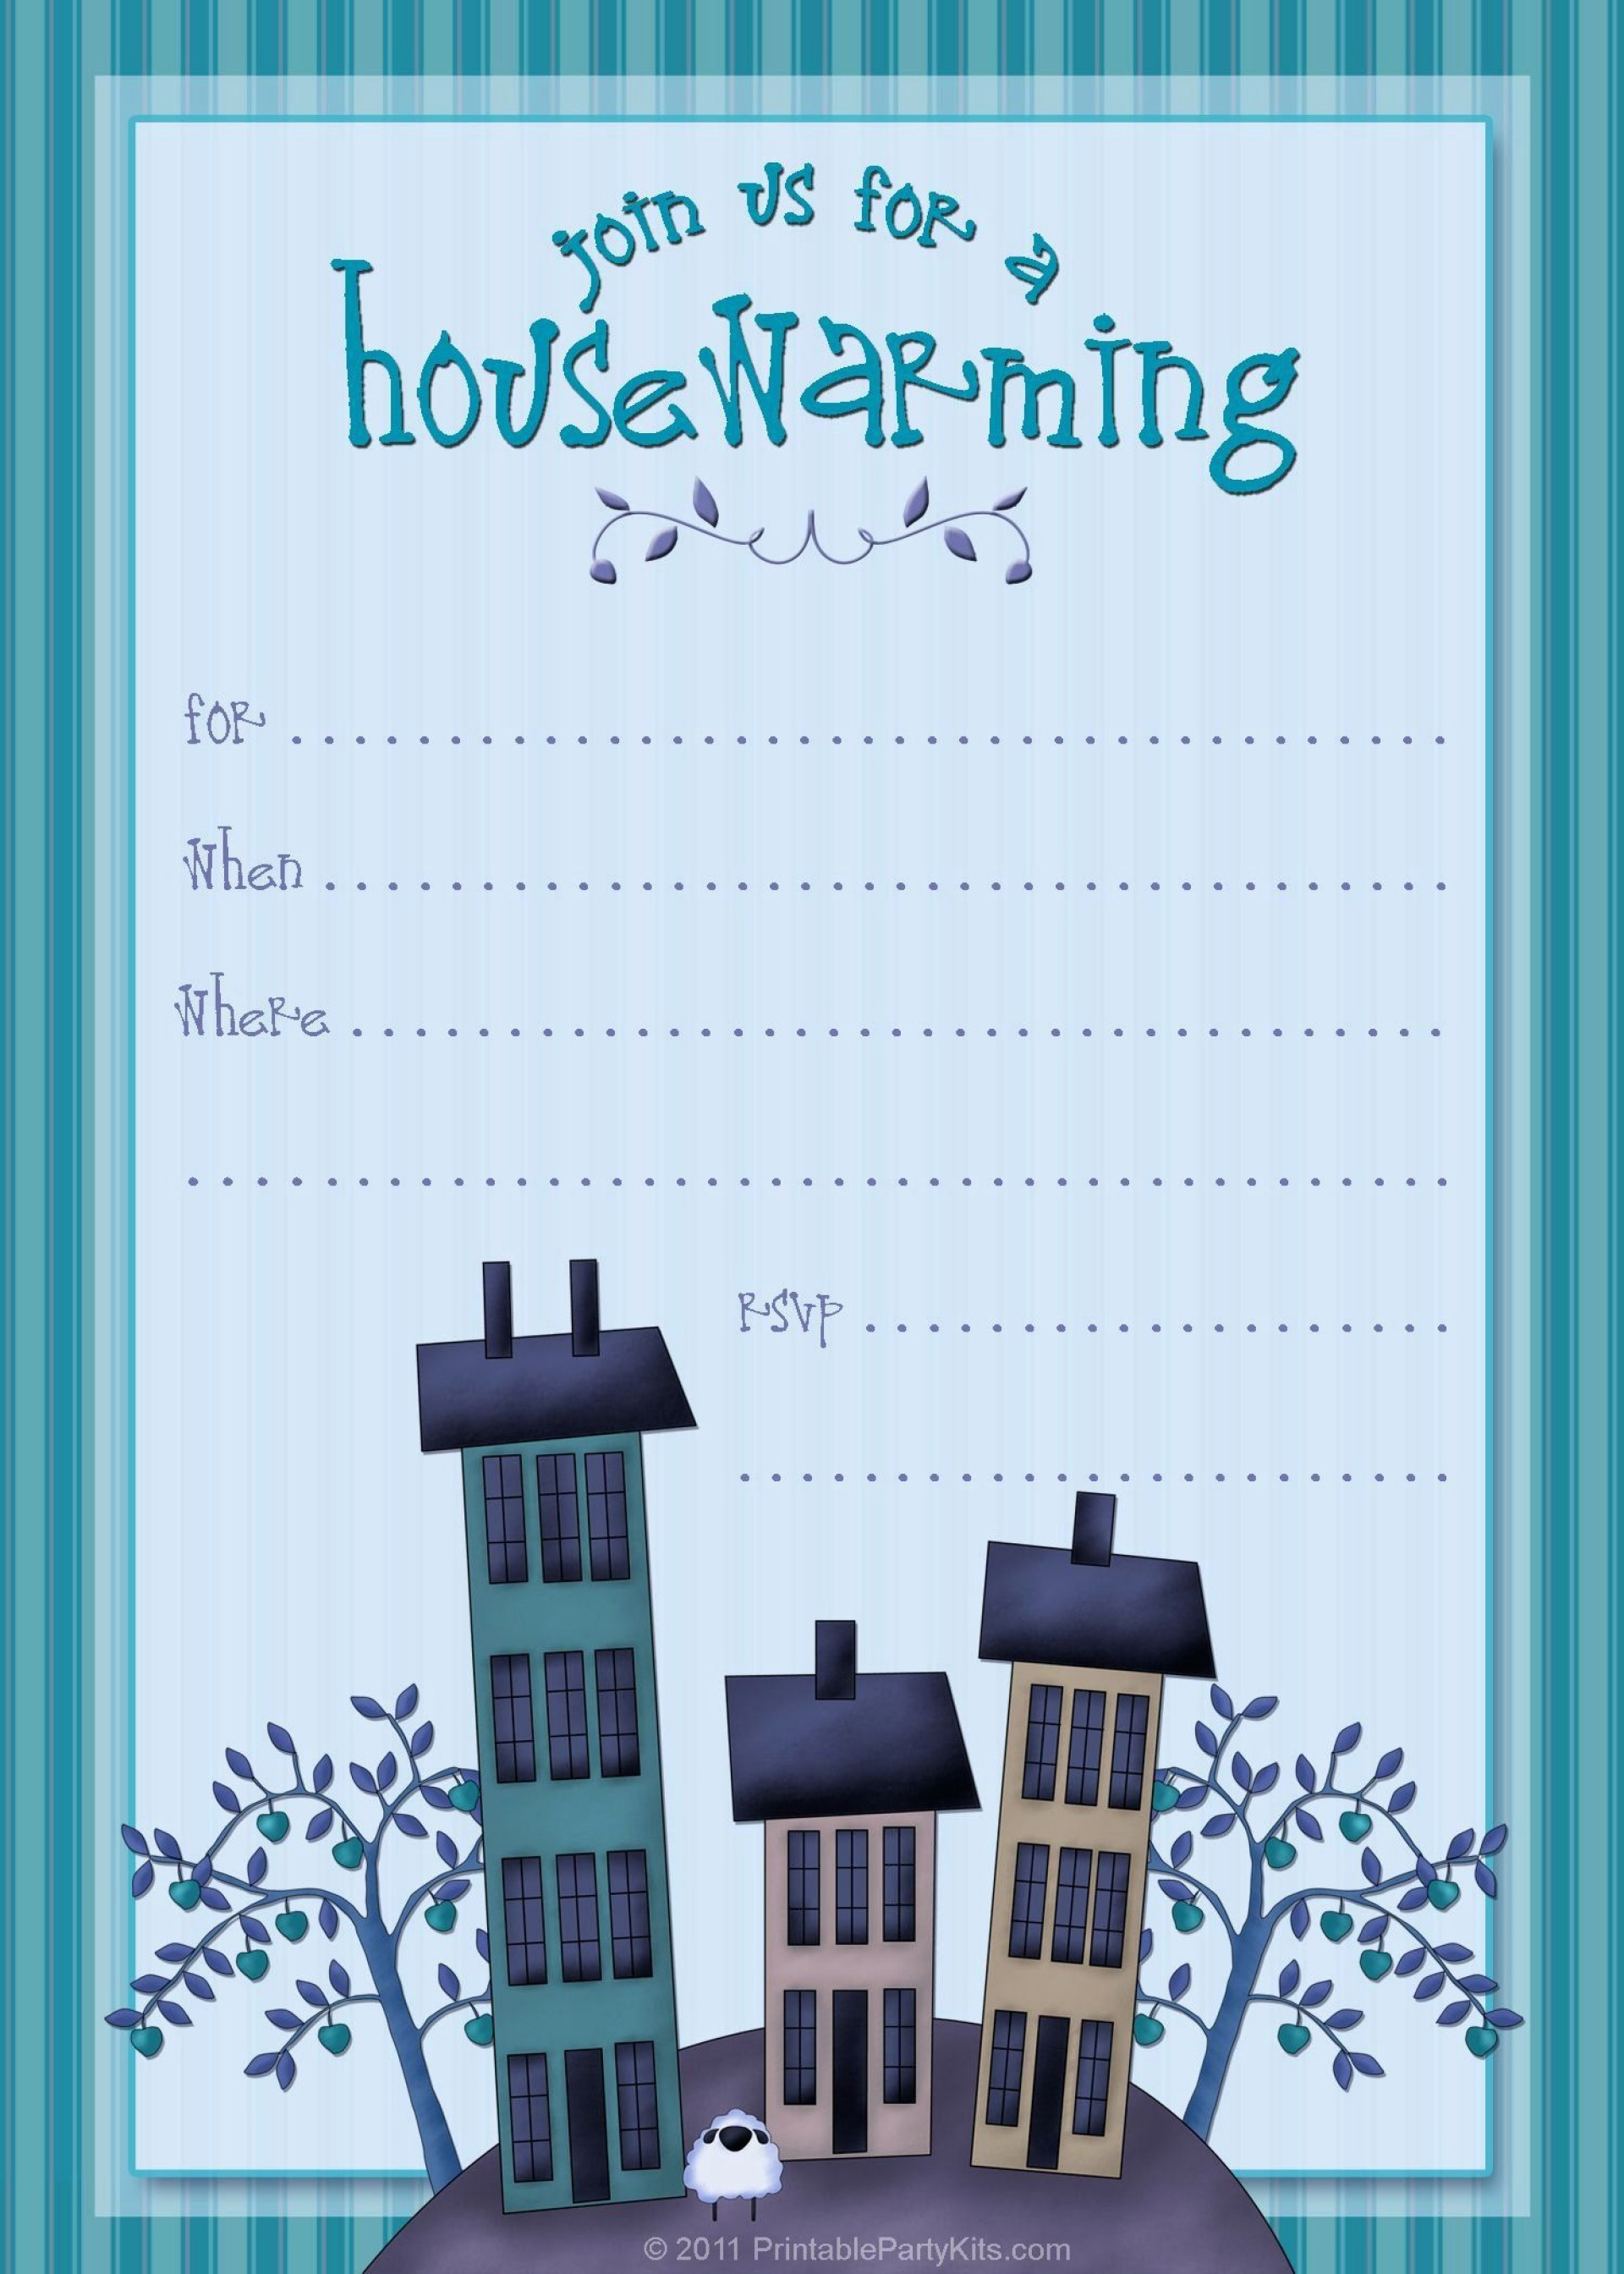 003 Dreaded Housewarming Party Invitation Template Highest Clarity  Templates Free Download Card1920